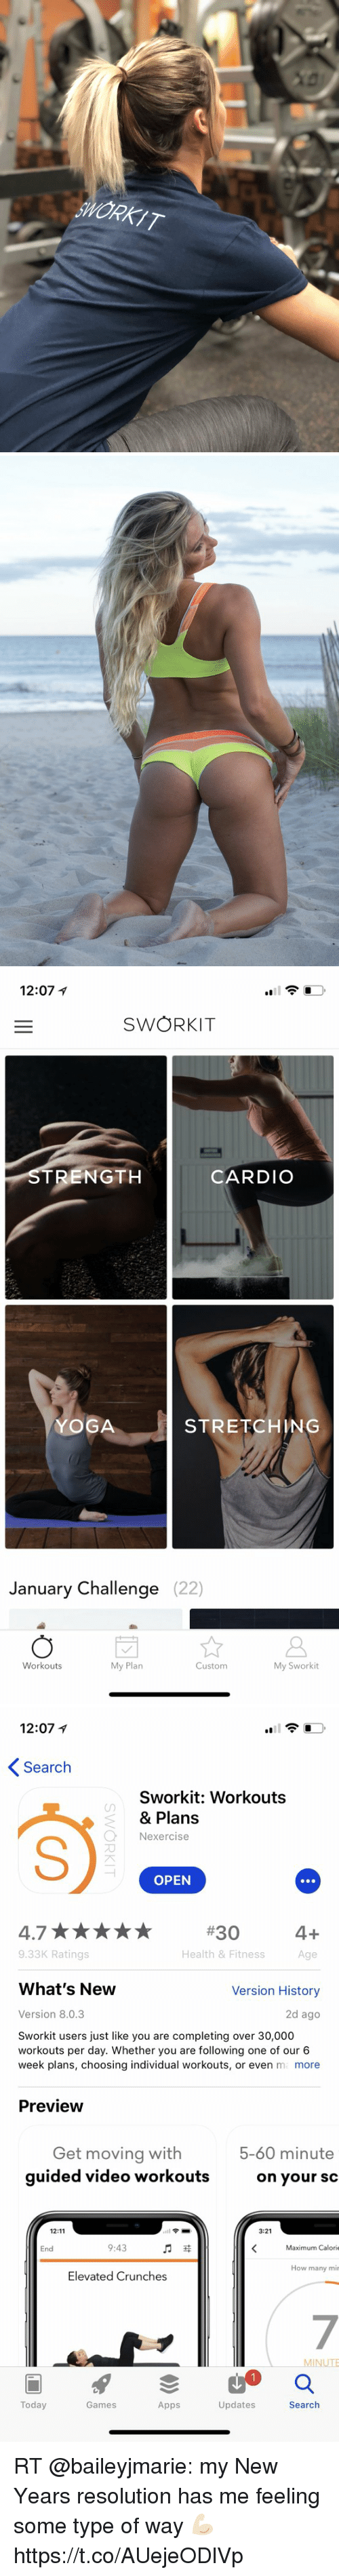 SIZZLE: WORKIT   12:07  SWORKIT  RENGTH  5  CARDIC  YOGA  STRETCHING  January Challenge (22)  Workouts  My Plan  Custom  wor   12:07イ  Search  Sworkit: Workouts  & Plans  Nexercise  OPEN  #30  9.33K Ratings  Health & Fitness  Age  What's New  Version History  Version 8.0.3  2d ago  Sworkit users just like you are completing over 30,000  workouts per day. Whether you are following one of our 6  week plans, choosing individual workouts, or even m more  Preview  Get moving with  quided video workoutS  5-60 minute  on your sc  12:11  3:21  End  9:43  Maximum Calorie  ow many mi  Elevated Crunches  Today  Games  Apps  Updates  Search RT @baileyjmarie: my New Years resolution has me feeling some type of way  ?? https://t.co/AUejeODlVp